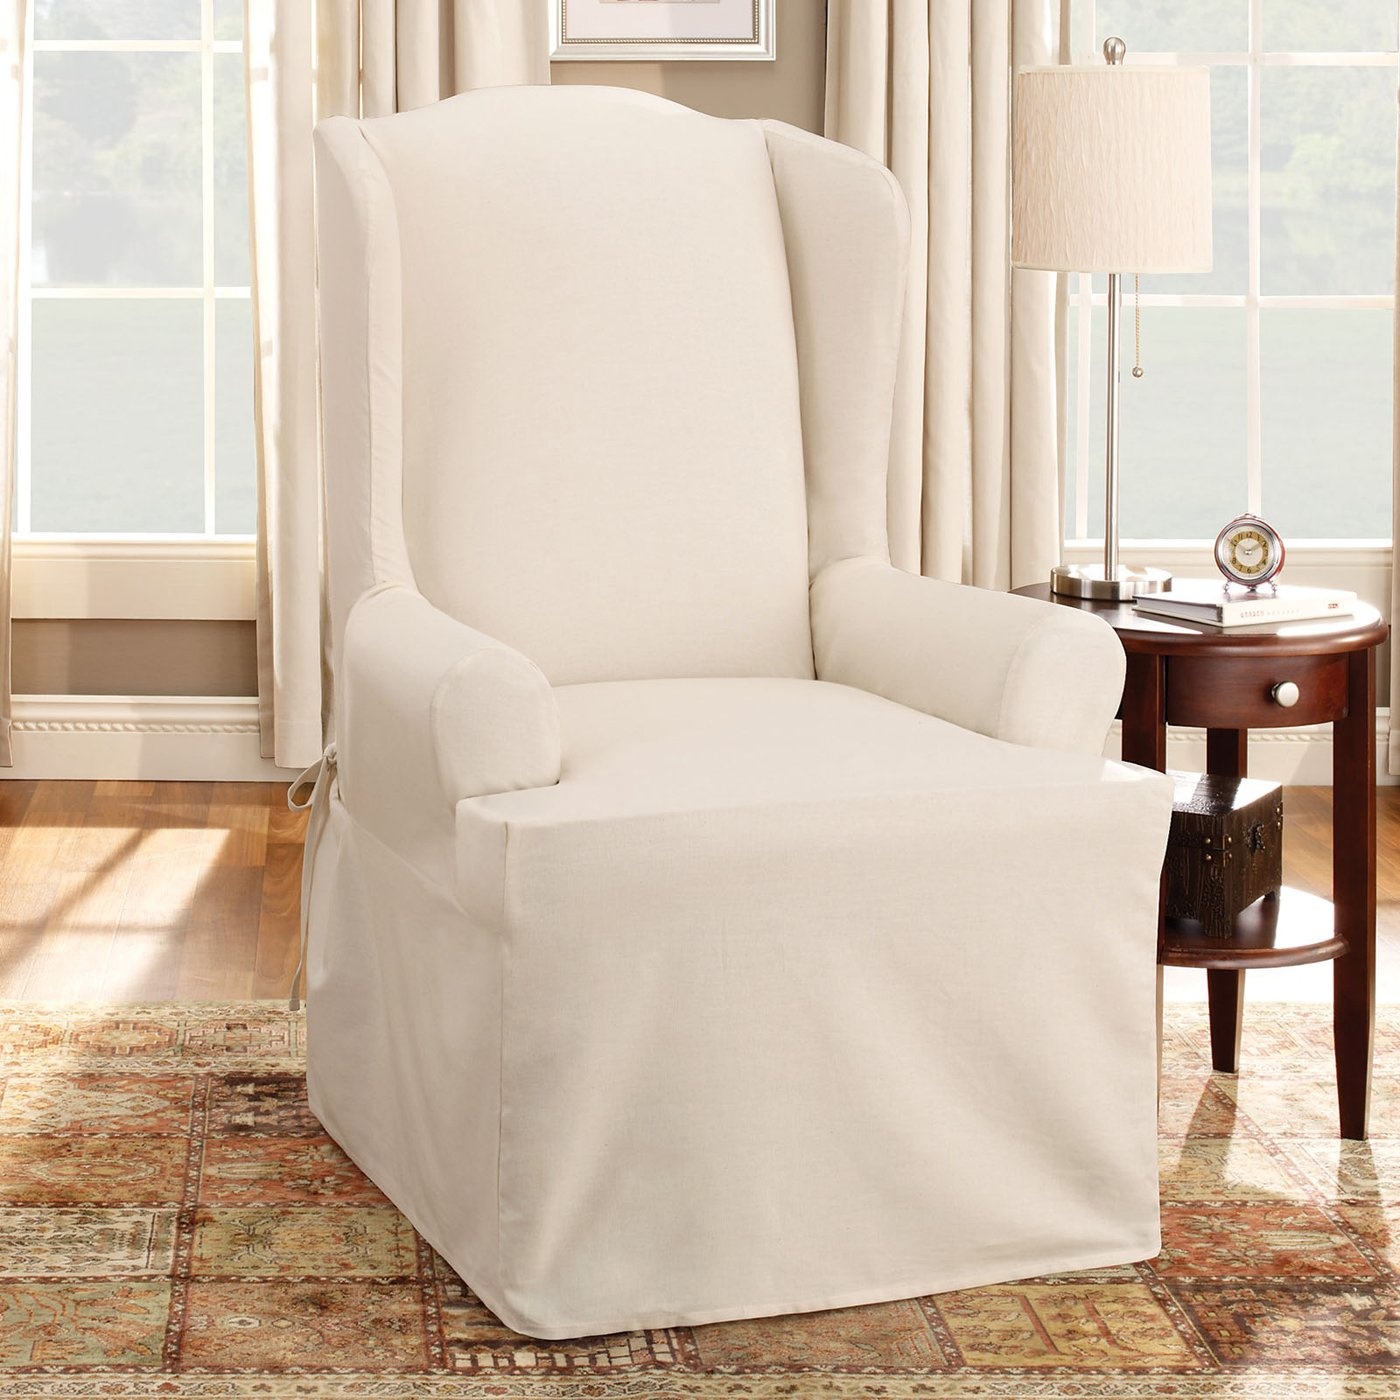 Superbe Cotton Duck Slip Cover For Chair In Natural White Combined With Round  Wooden End Table With